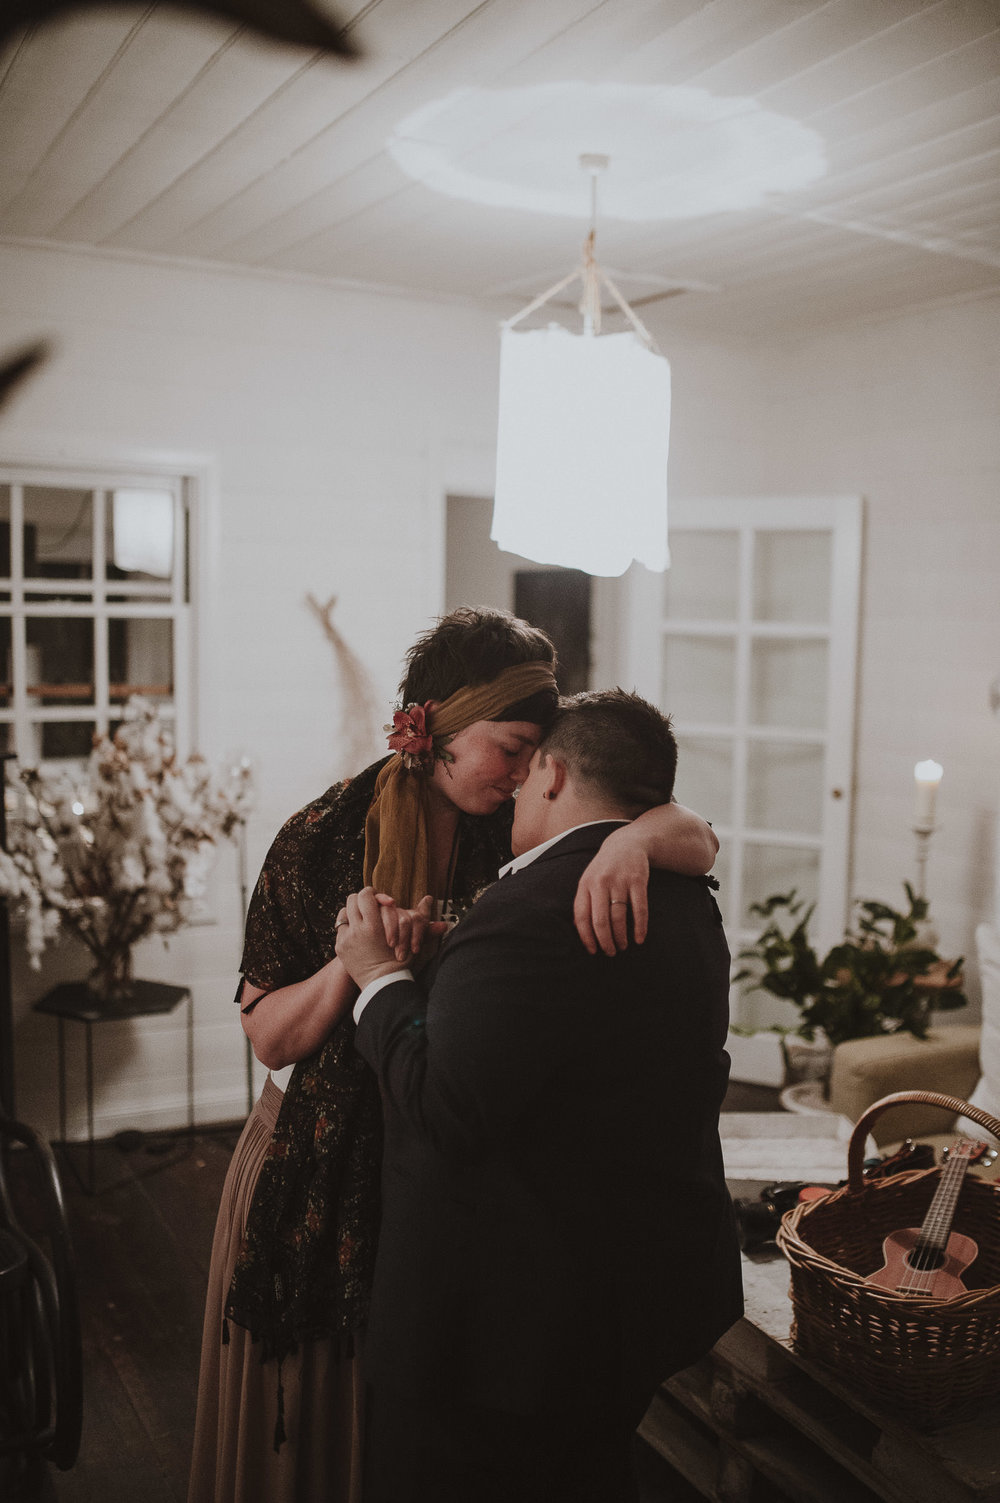 Susan_Remi_Same_Sex_Elopement_Anteloping_Kangaroo_Valley_Blog-99.jpg